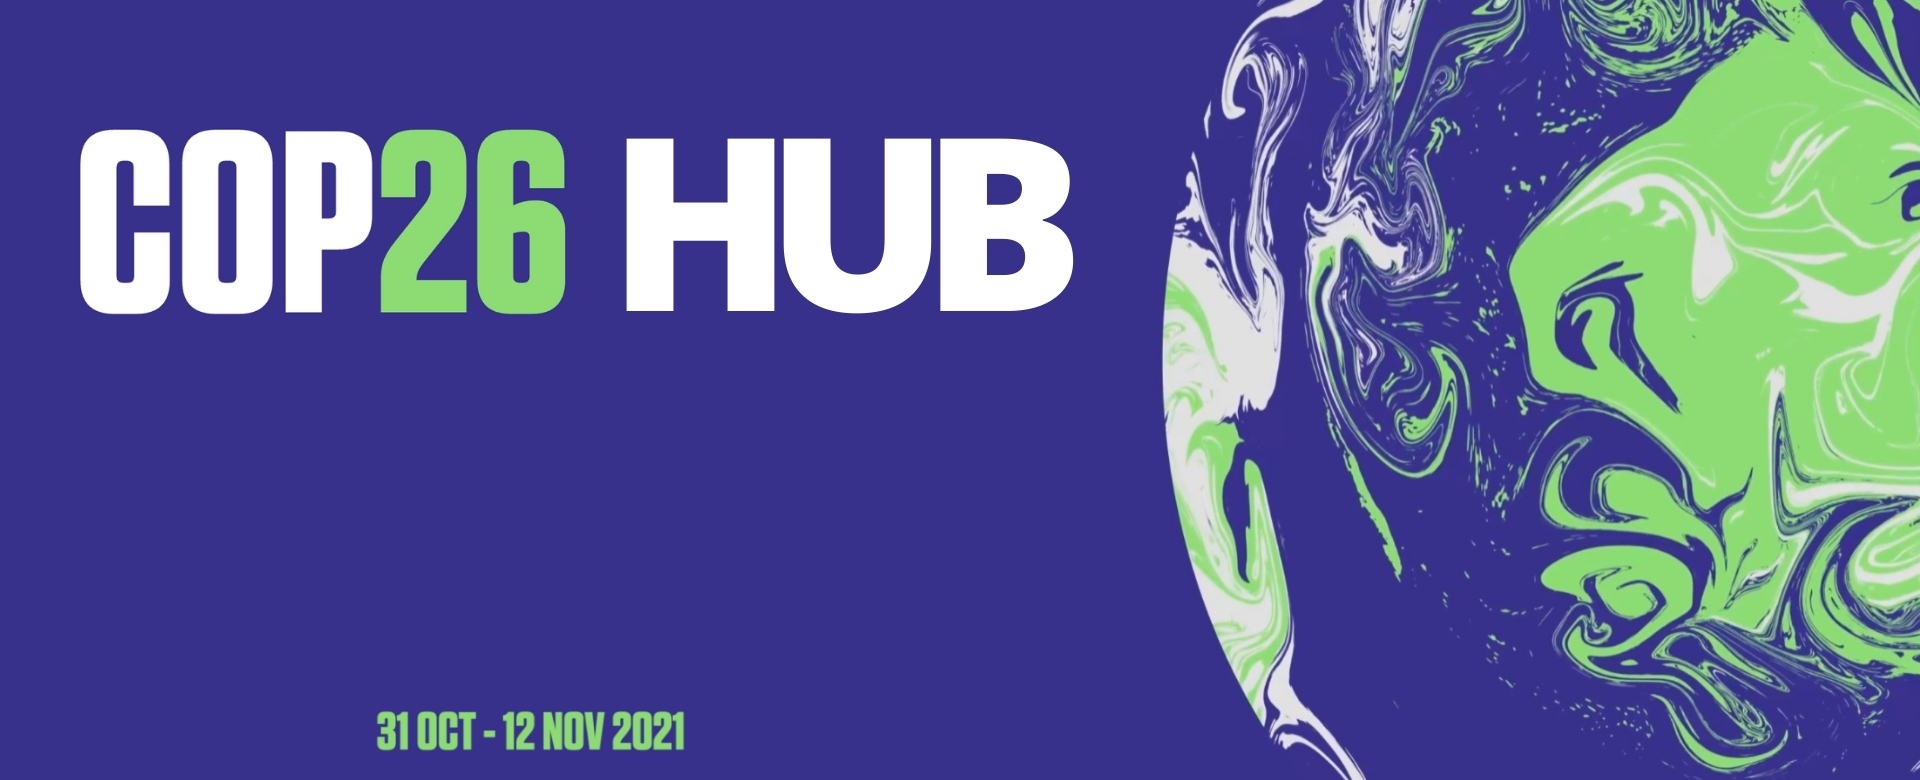 COP26 Hub Commonwealth Human Ecology Council (CHEC)